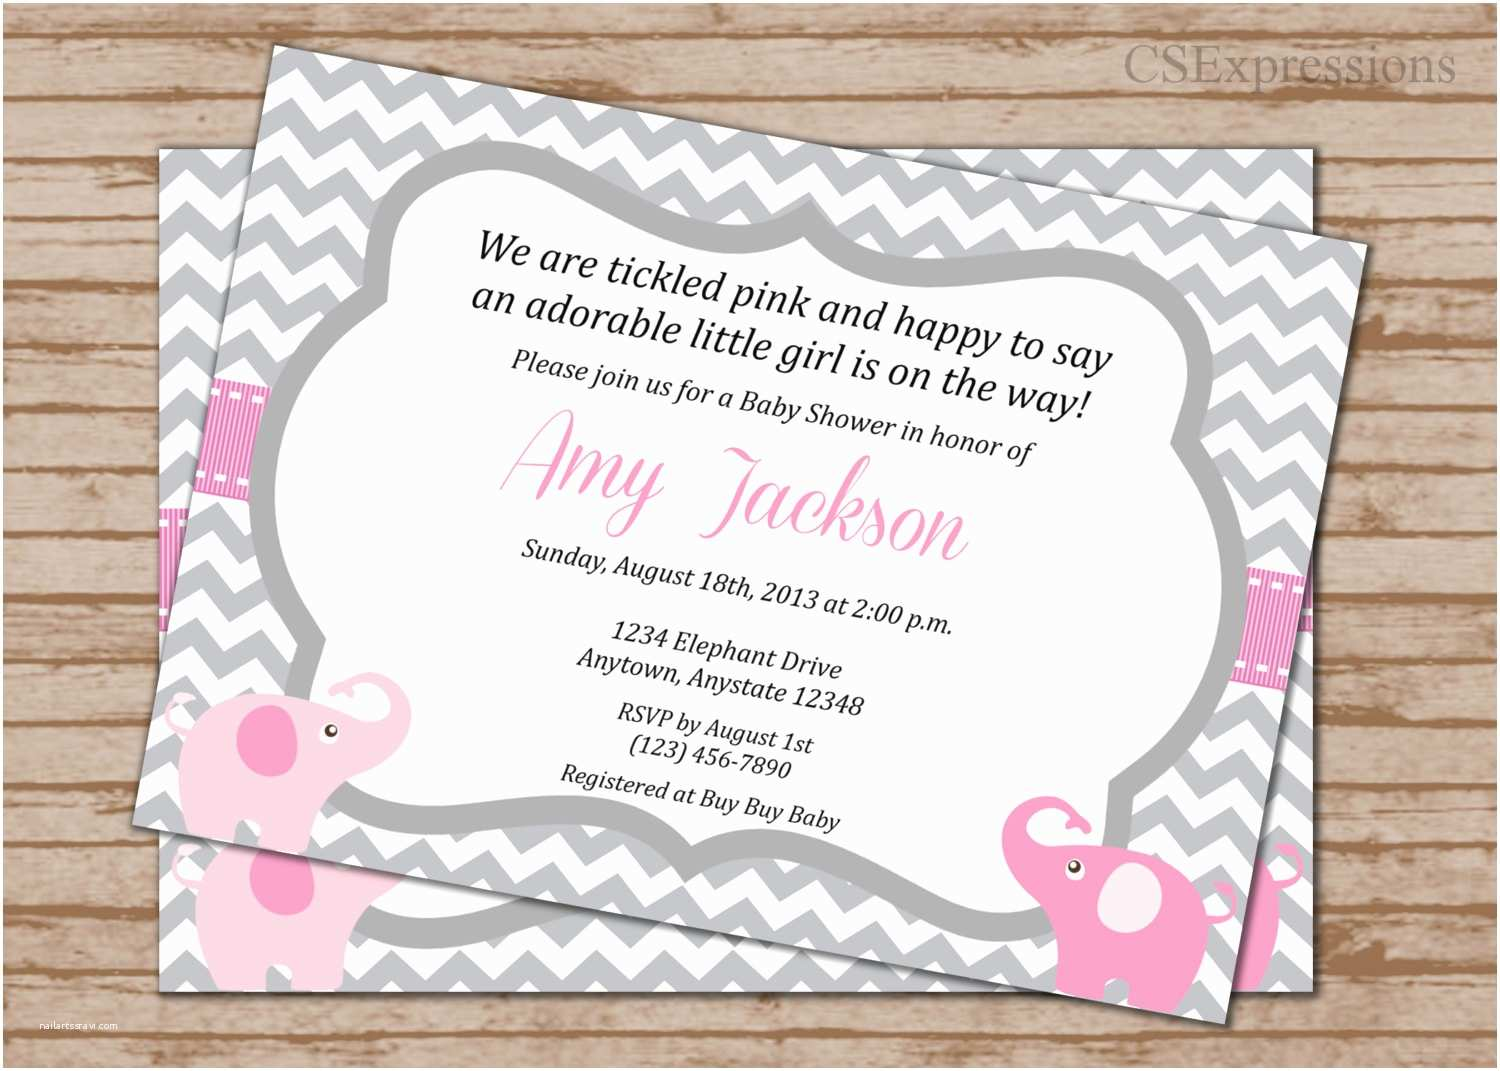 Pink and Gray Baby Shower Invitations Pink and Gray Elephant Baby Shower Invitation